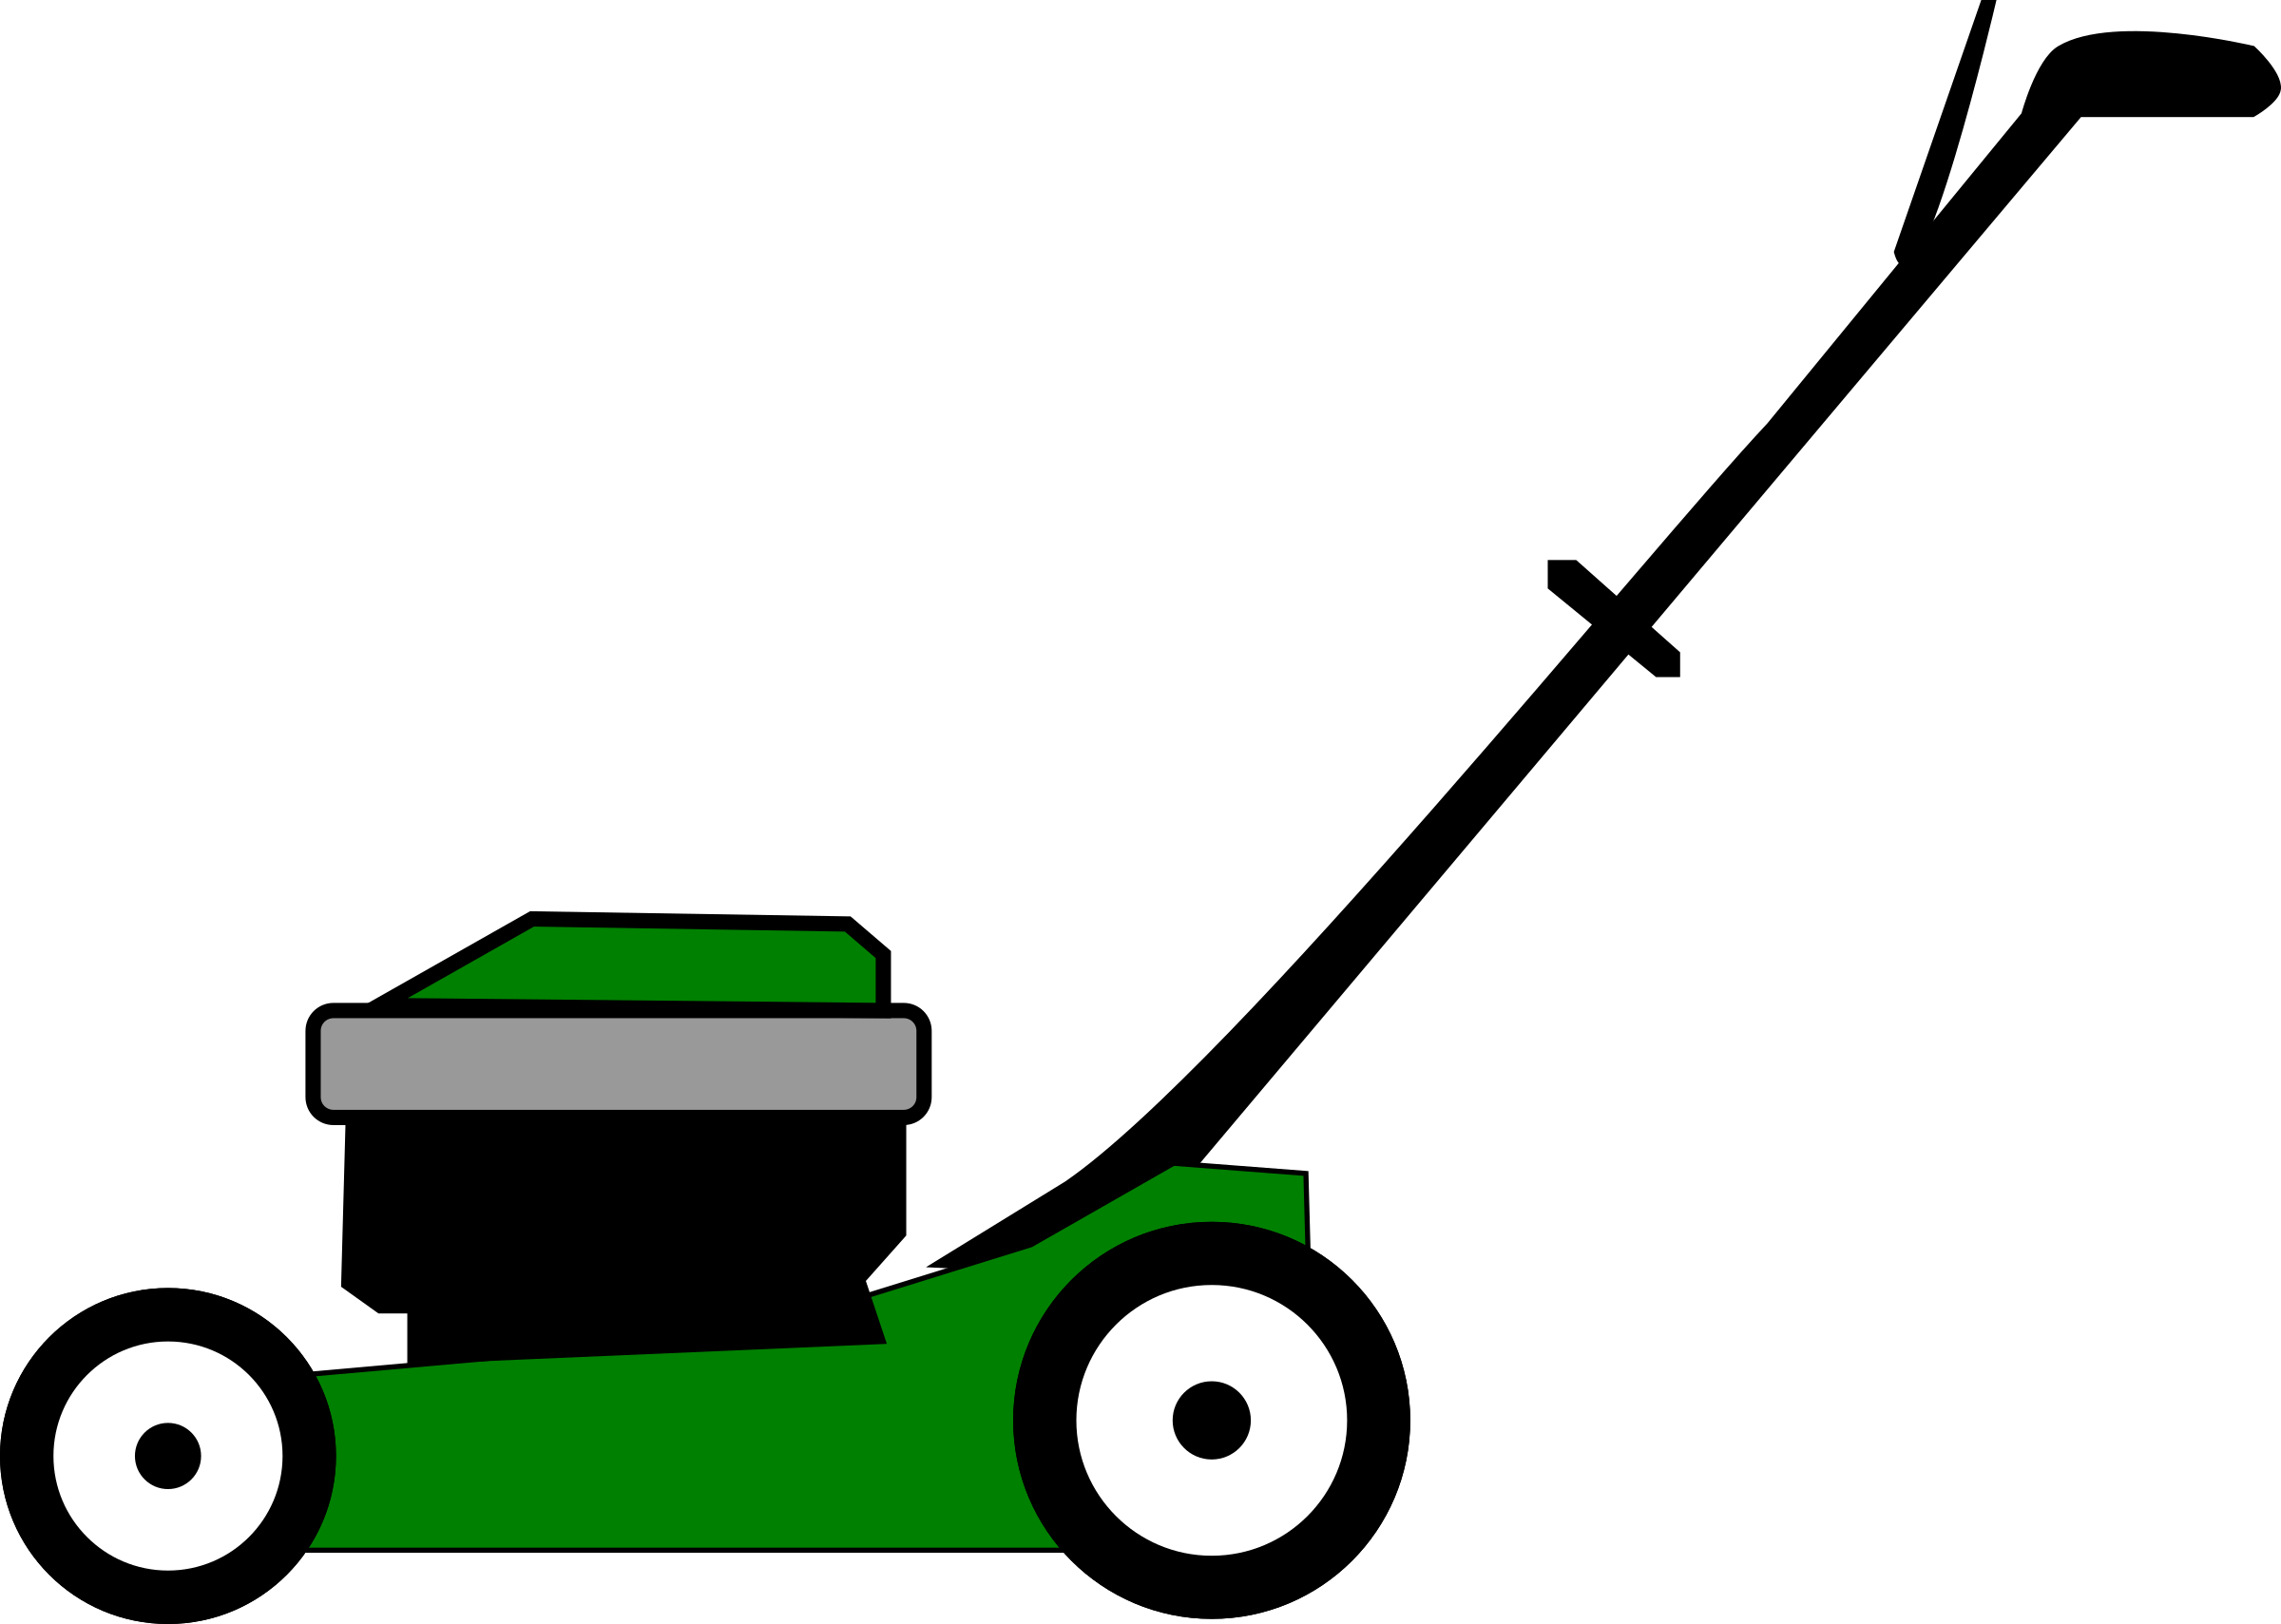 clip art black and white library Lawn mower clipart. Free download best on.